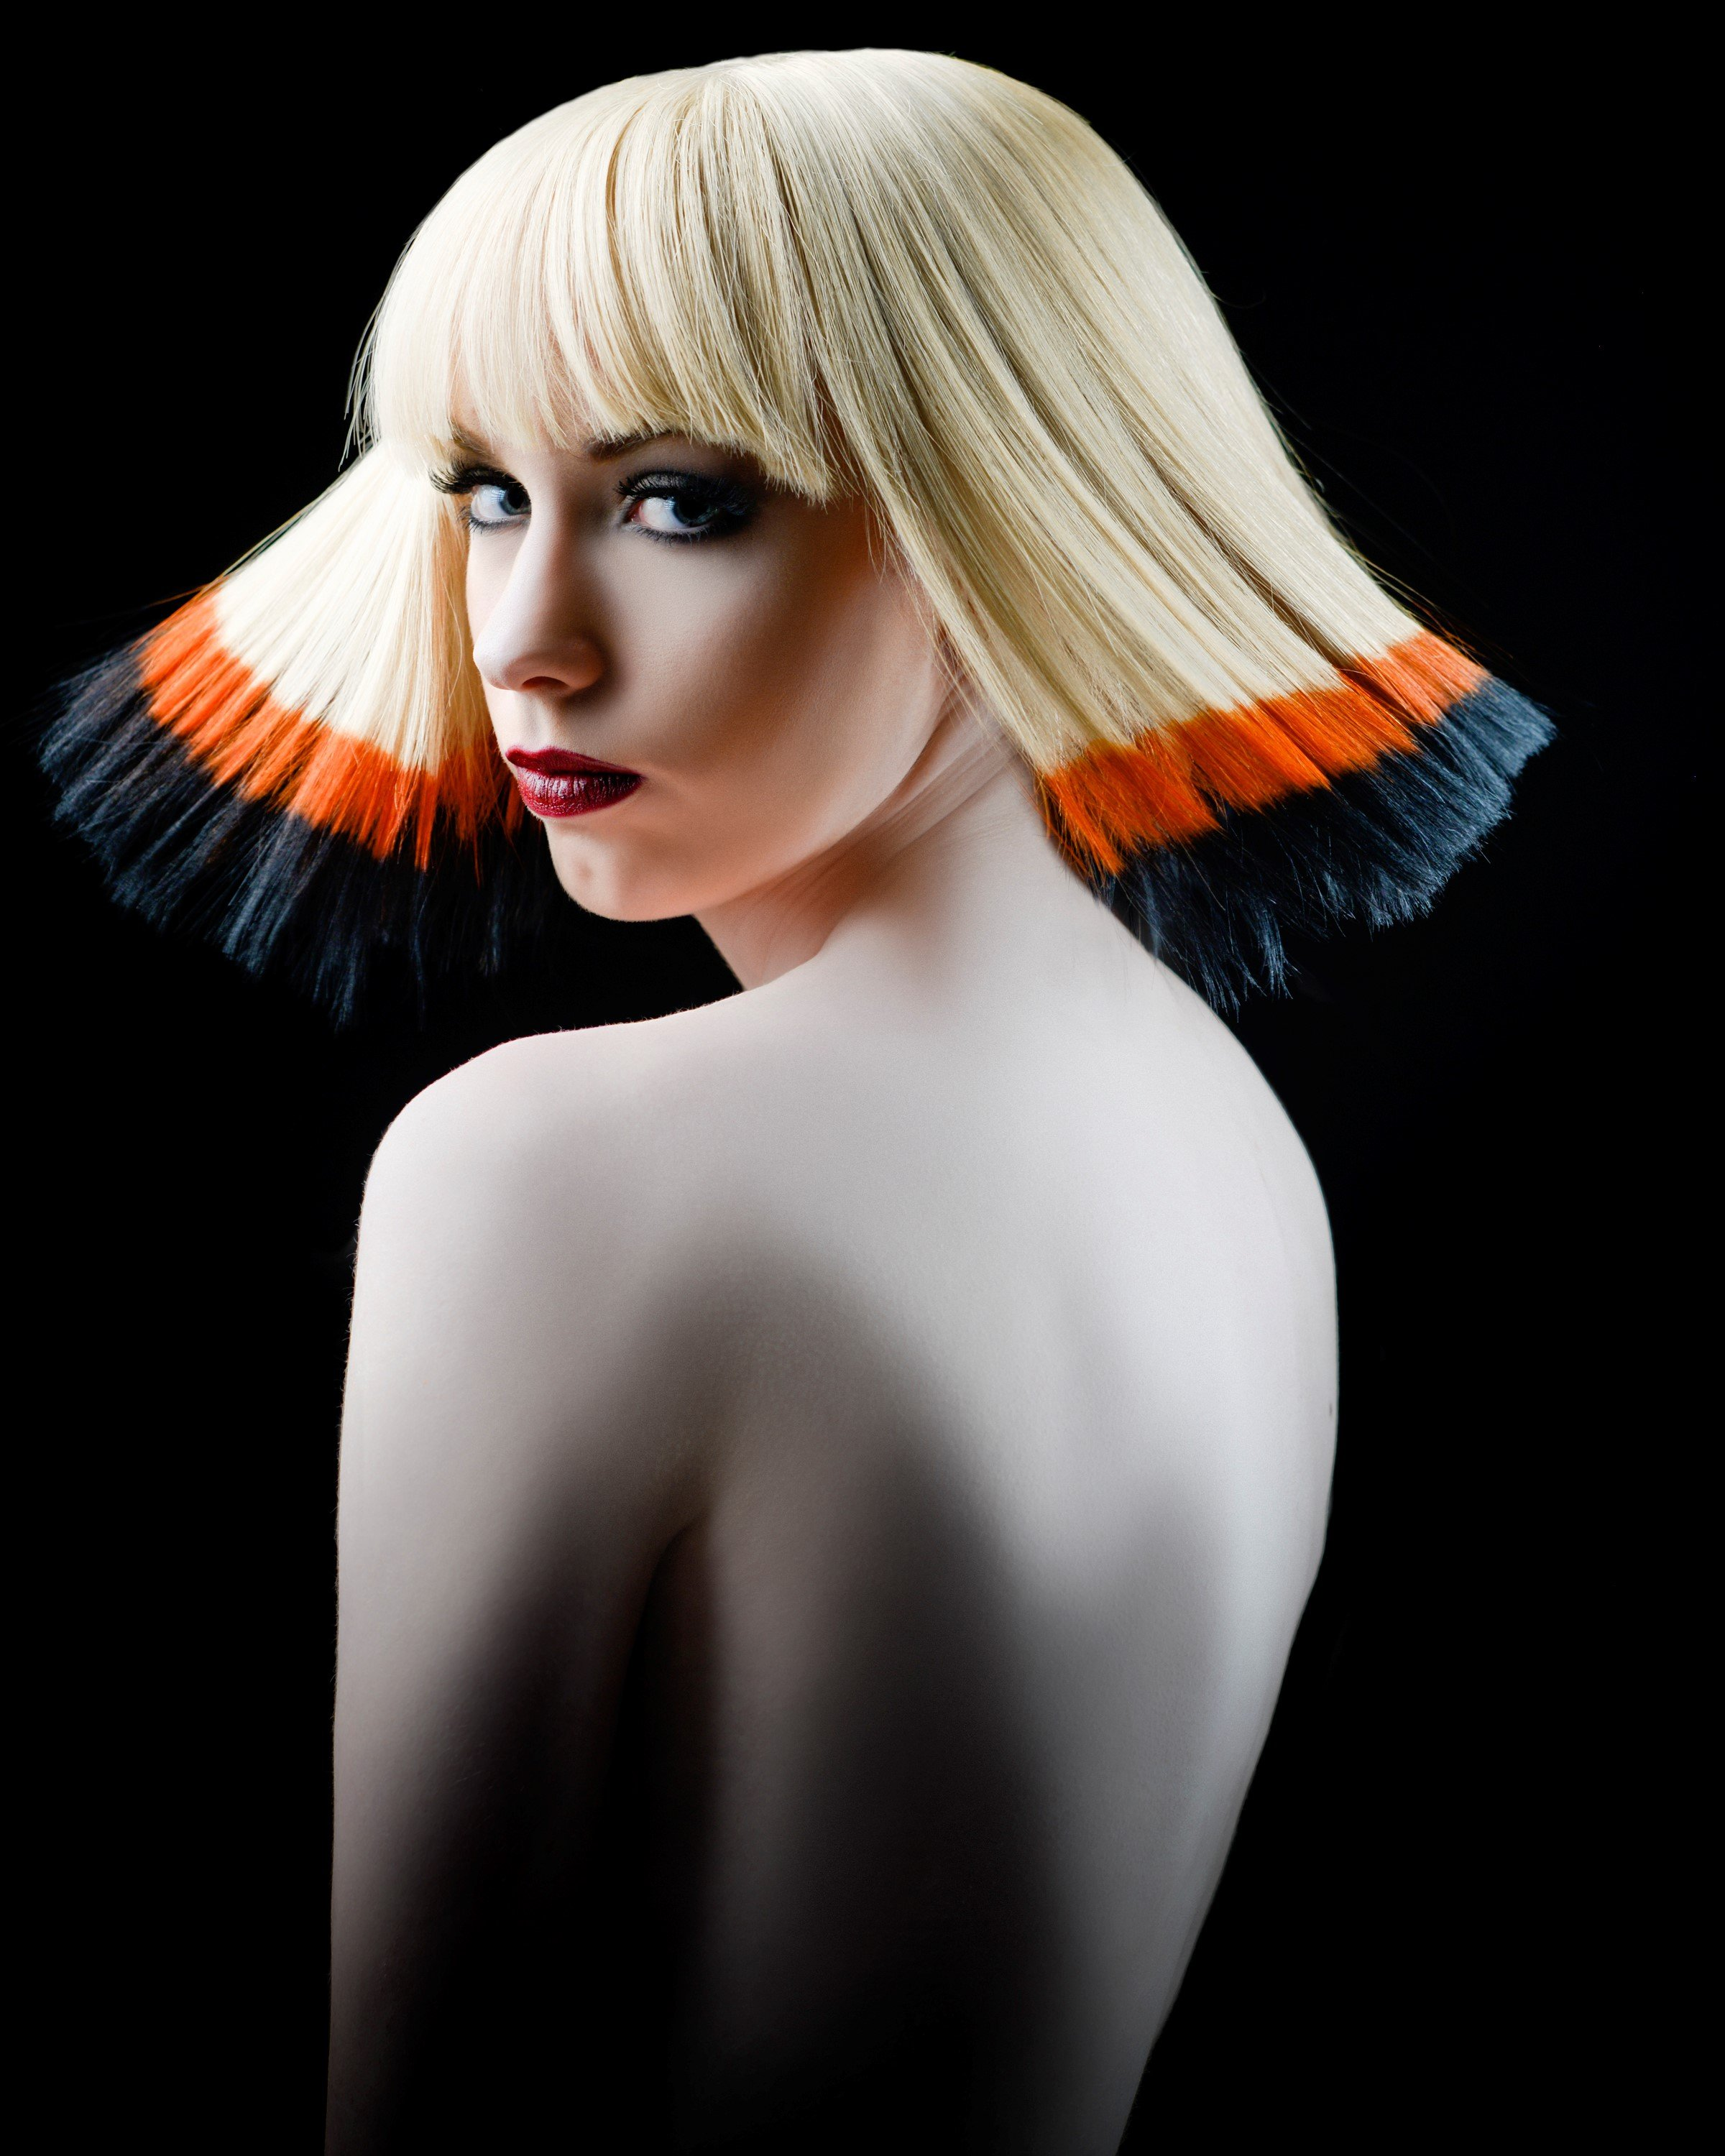 By Marlo Steenman (NAHA 2015 finalist/Courtesy of PBA)